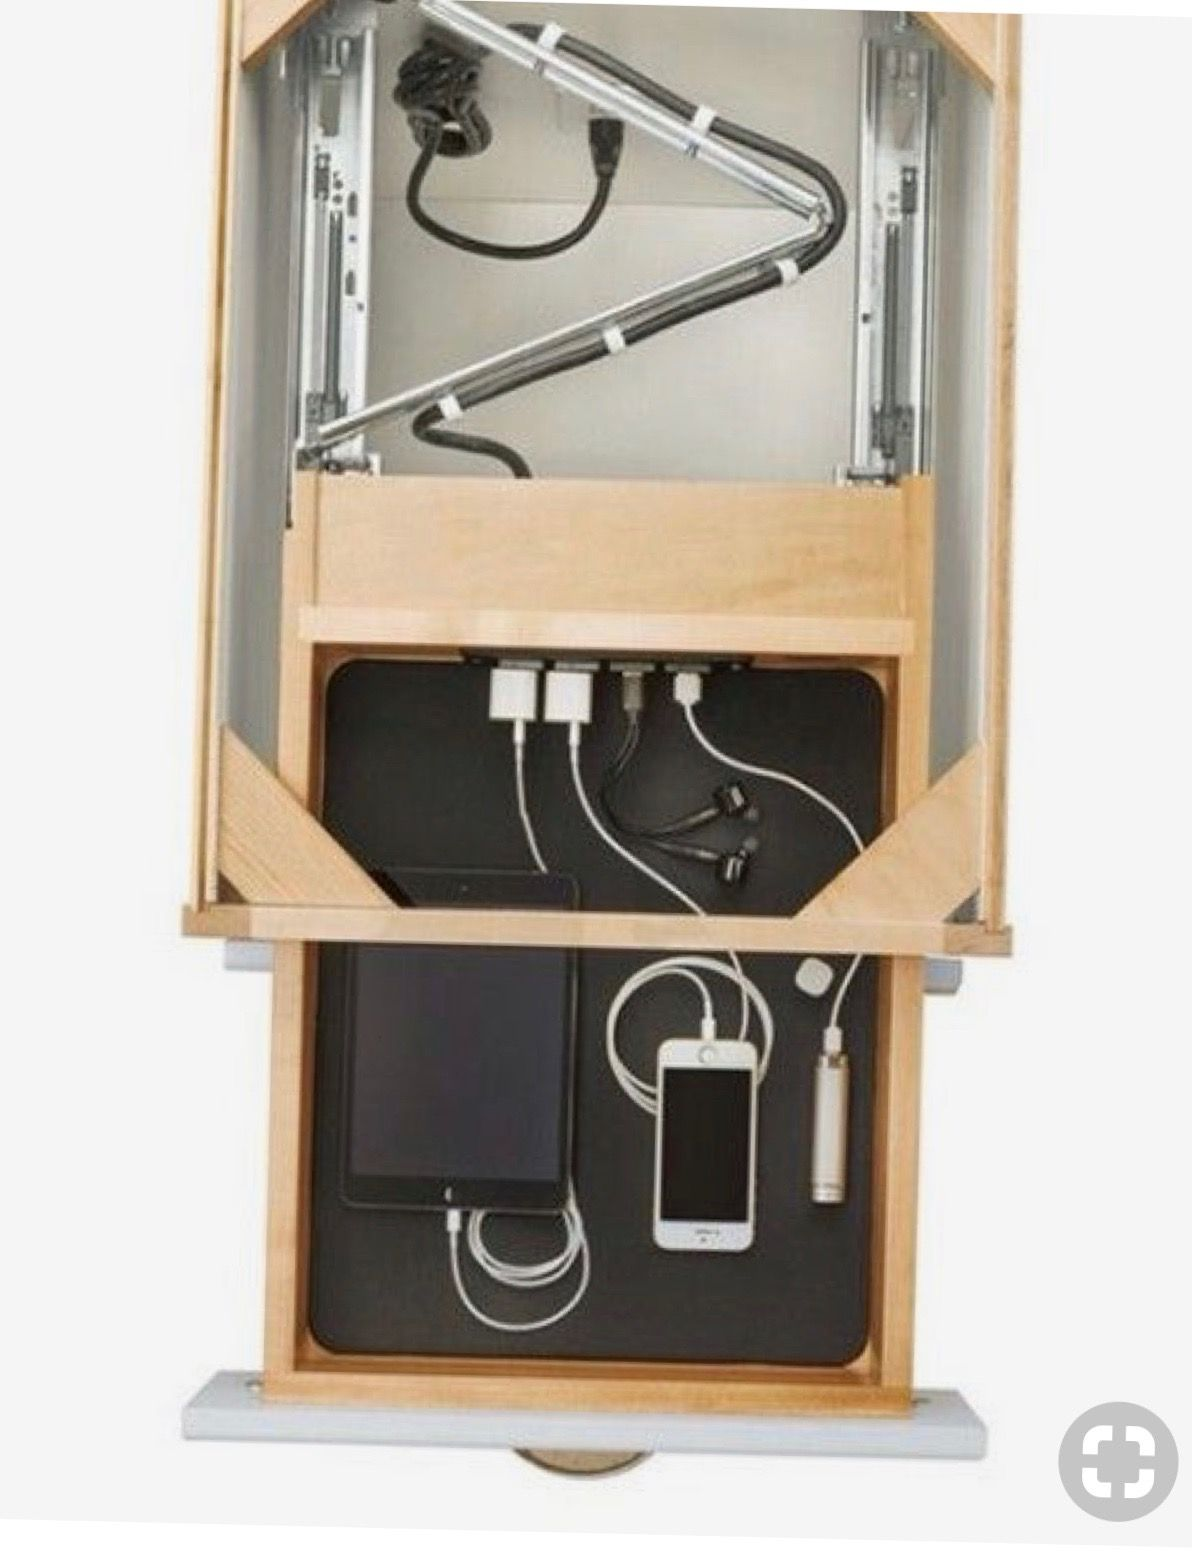 Tech drawer cutaway to expose cable touting mechanism